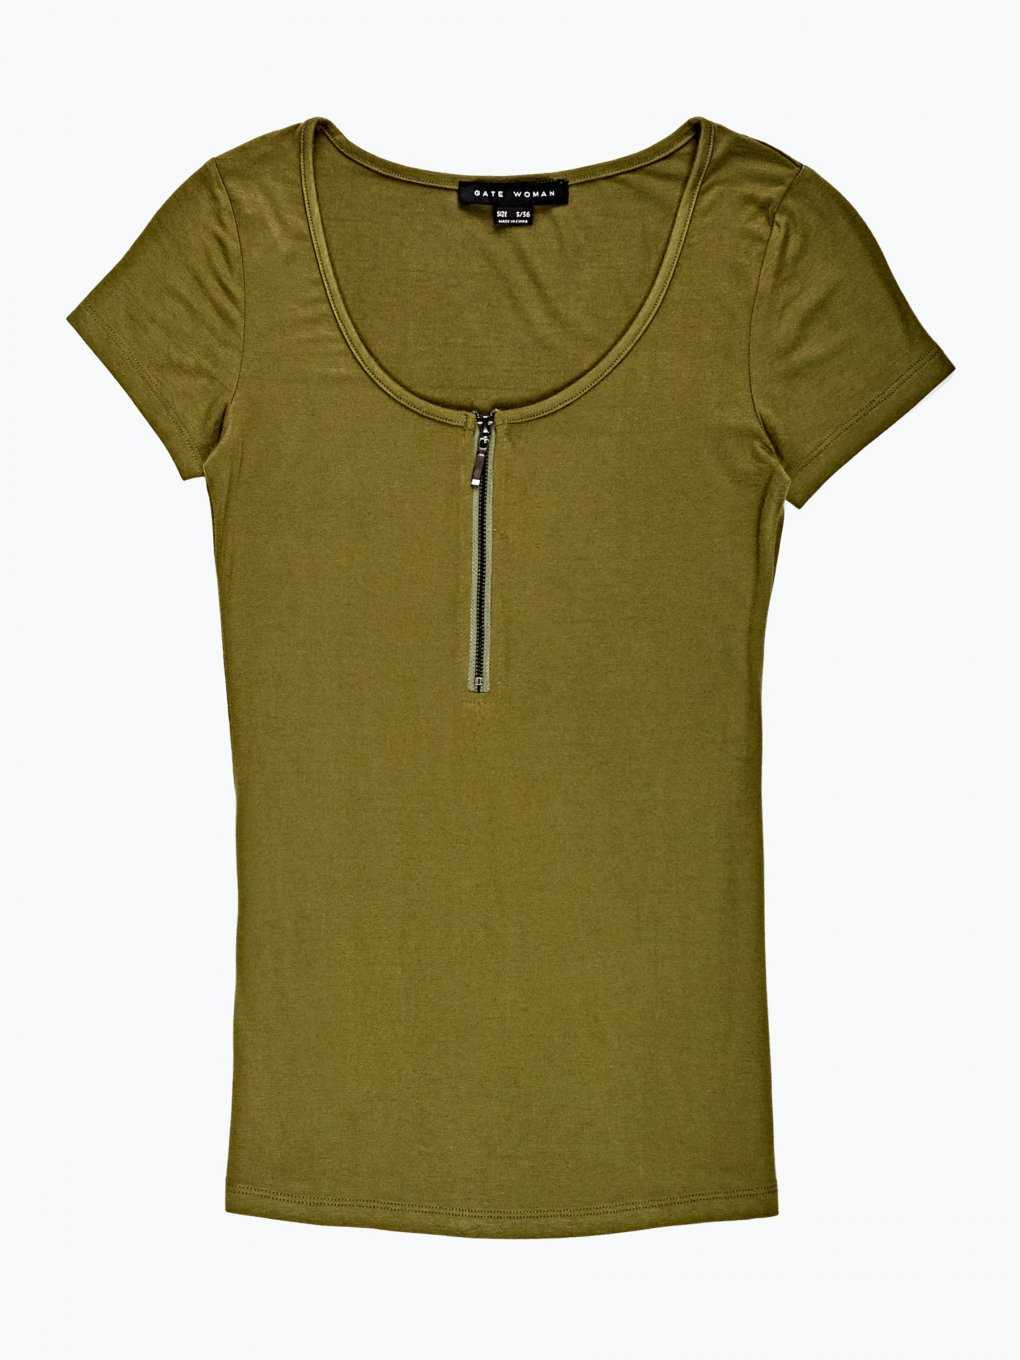 Zipper front t-shirt